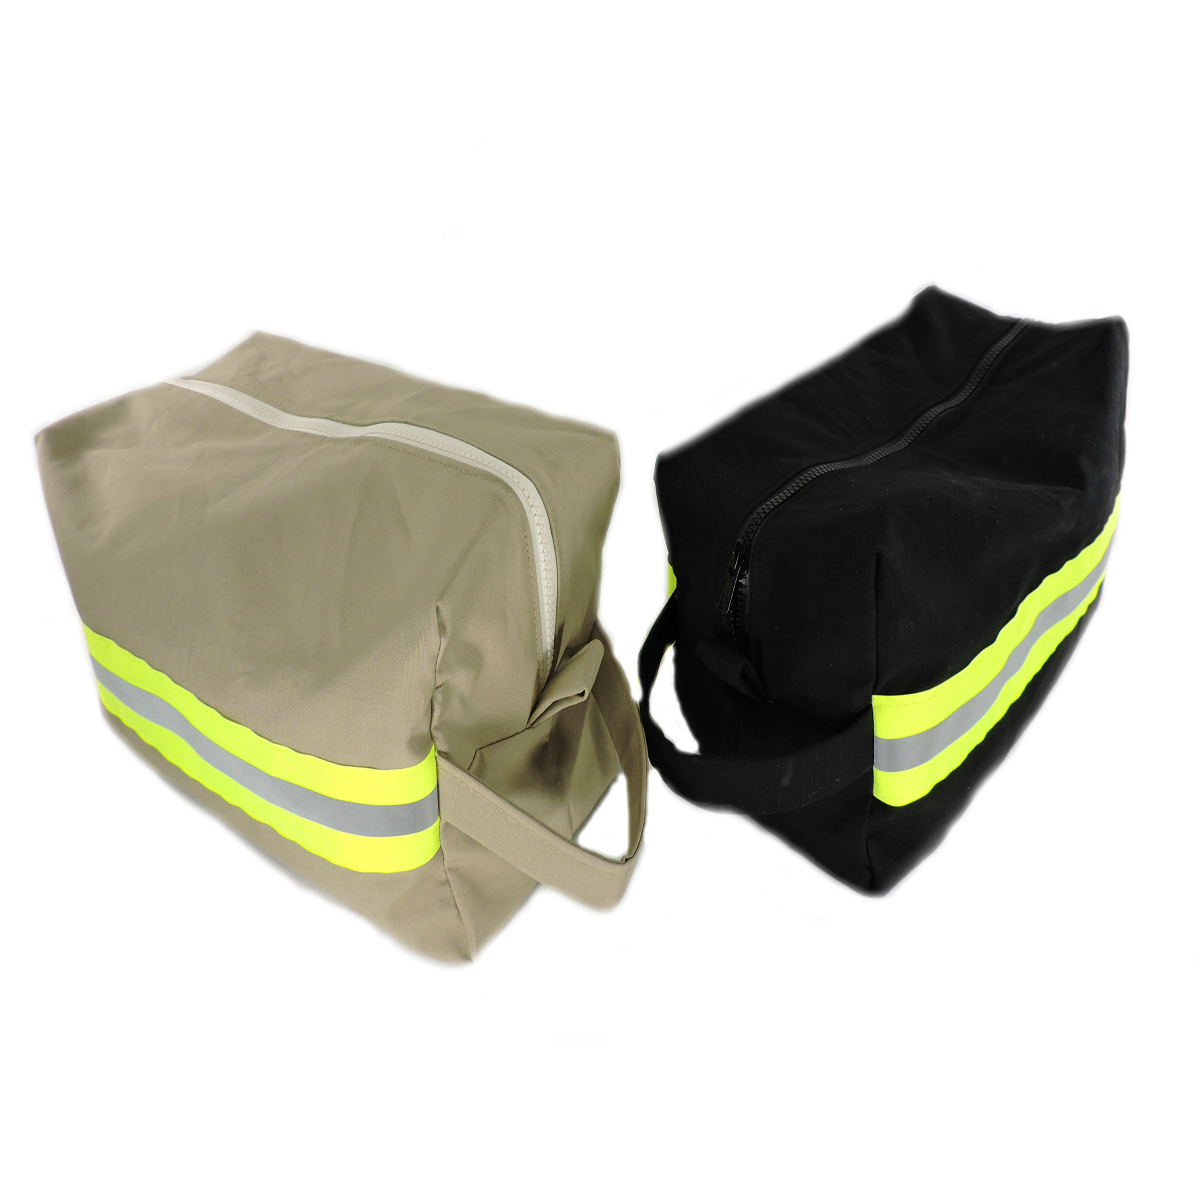 Firefighter-travel-bag